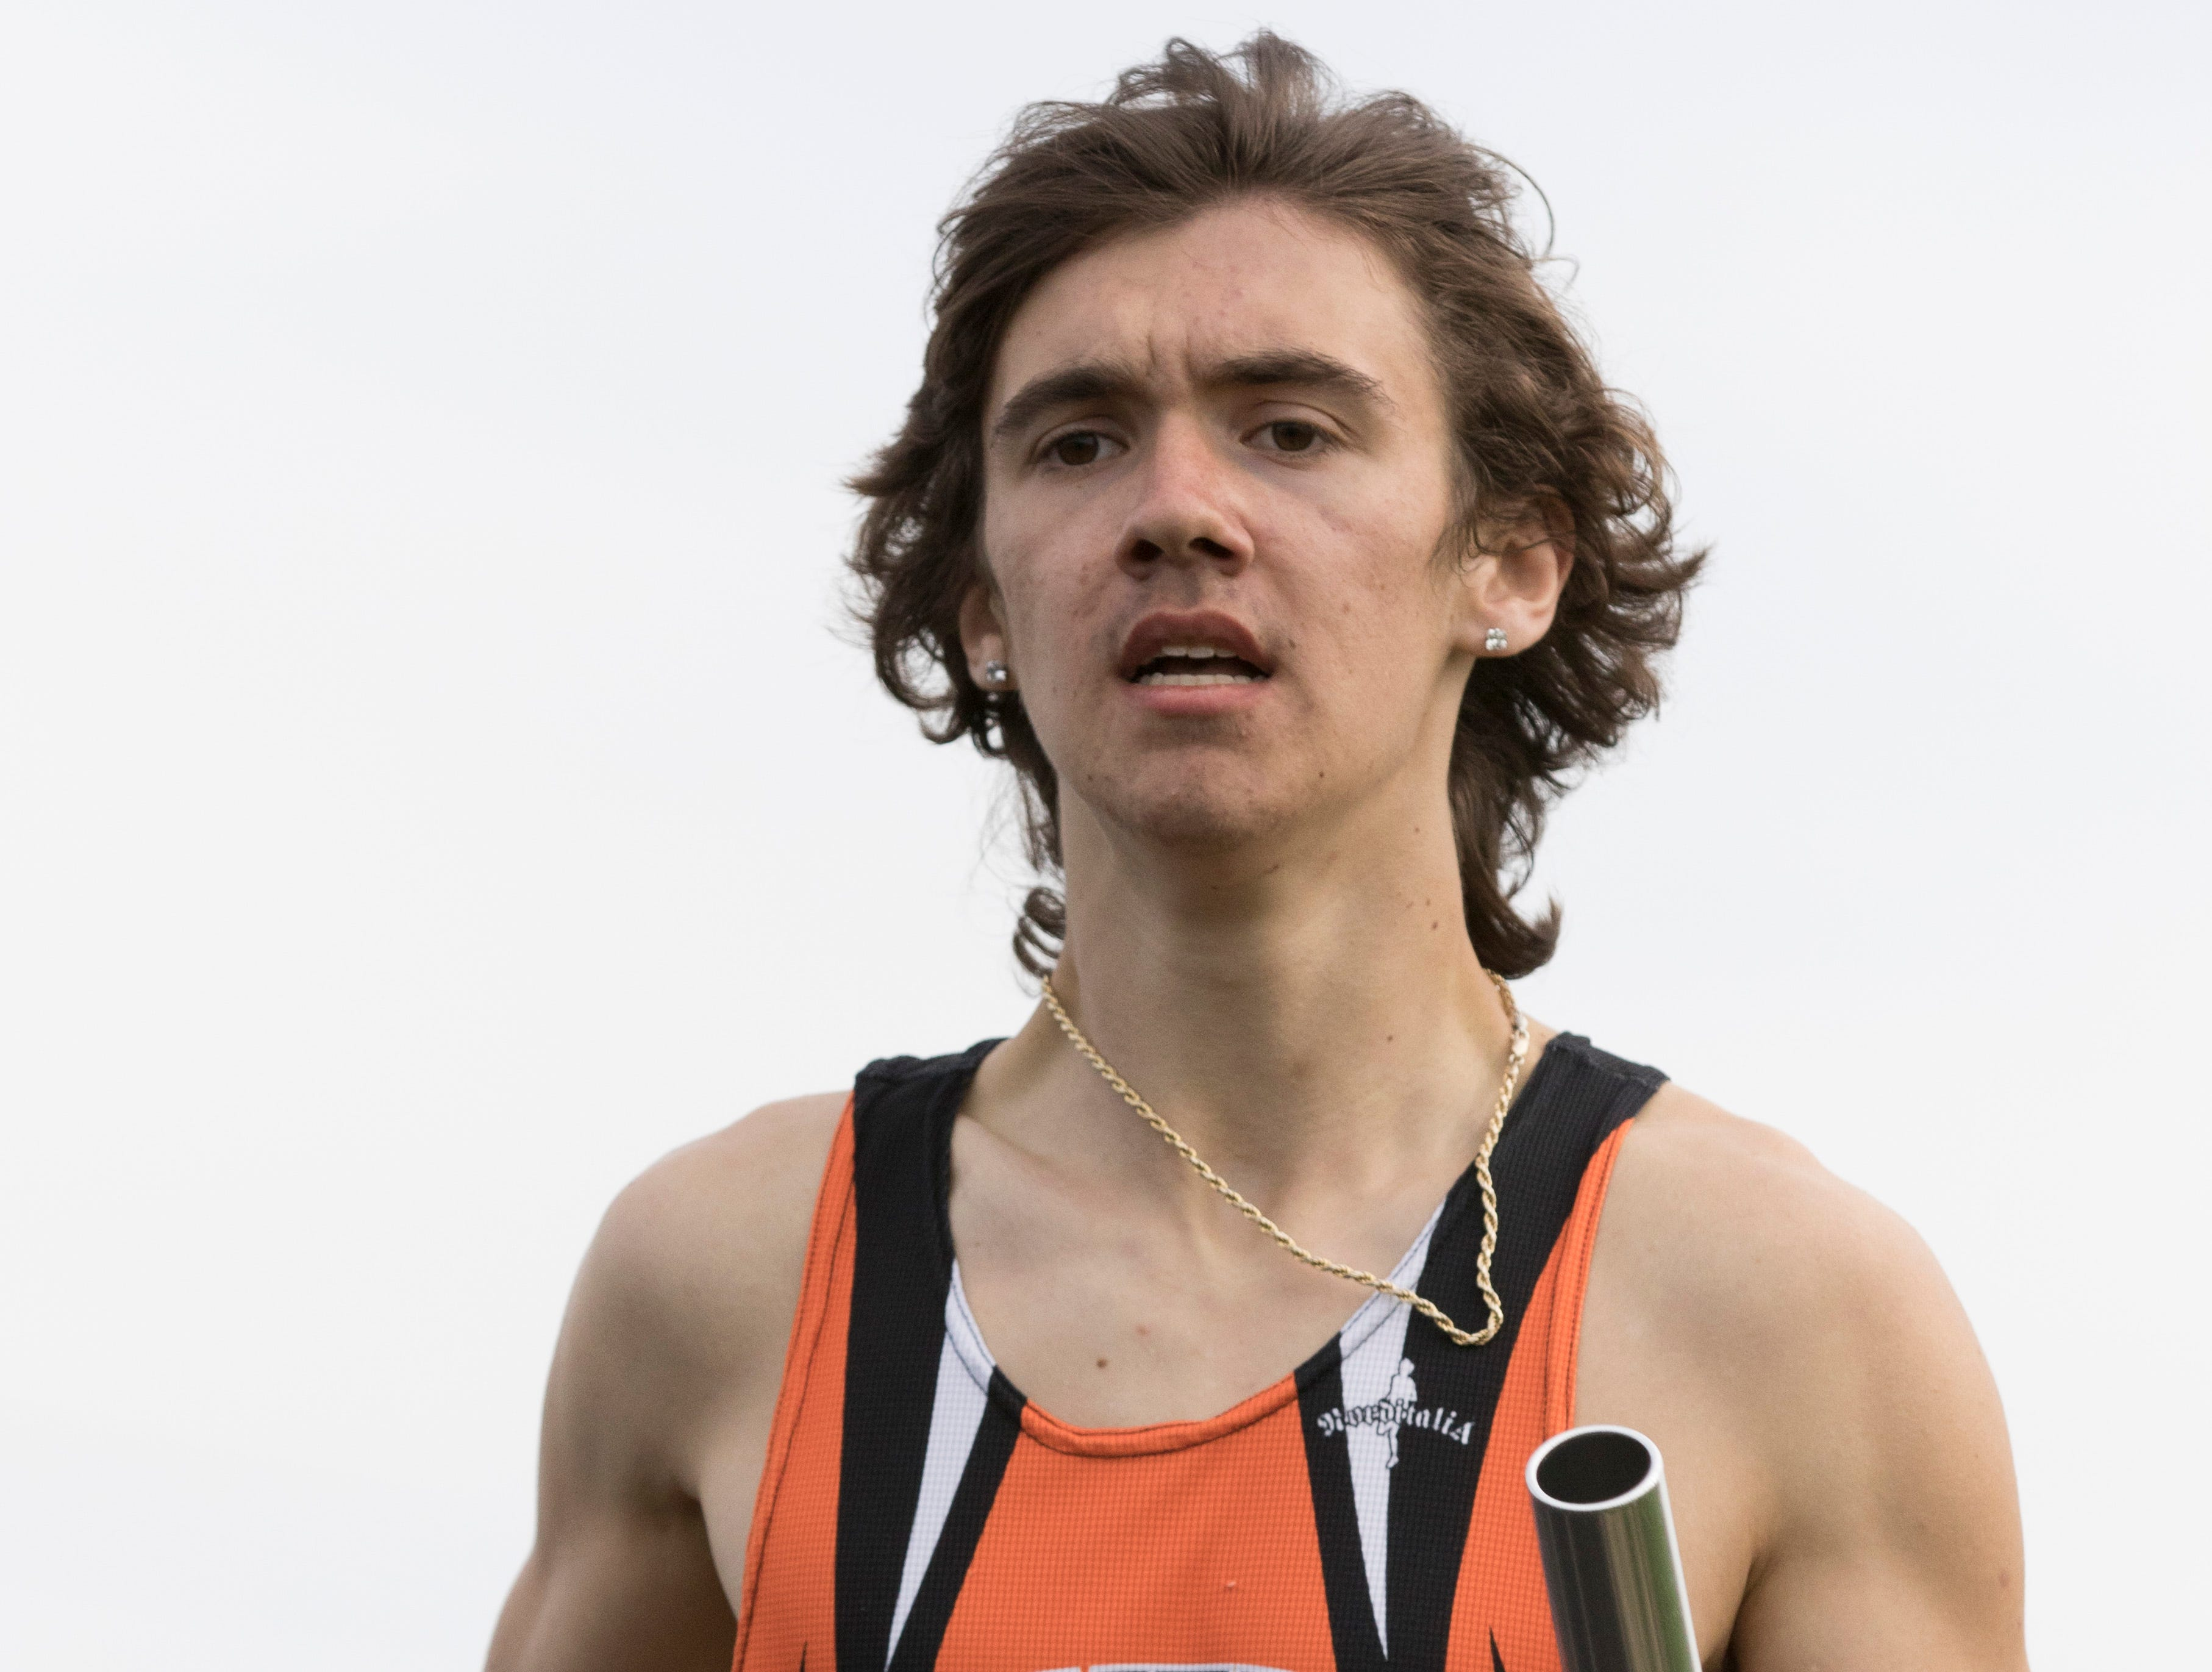 Junior Aidan Judd helped Waverly win the 4x800 meter relay run with a time of 8:48.33 on Thursday, April 11, 2019, at Paint Valley High School with the Waverly men's team taking first place overall.